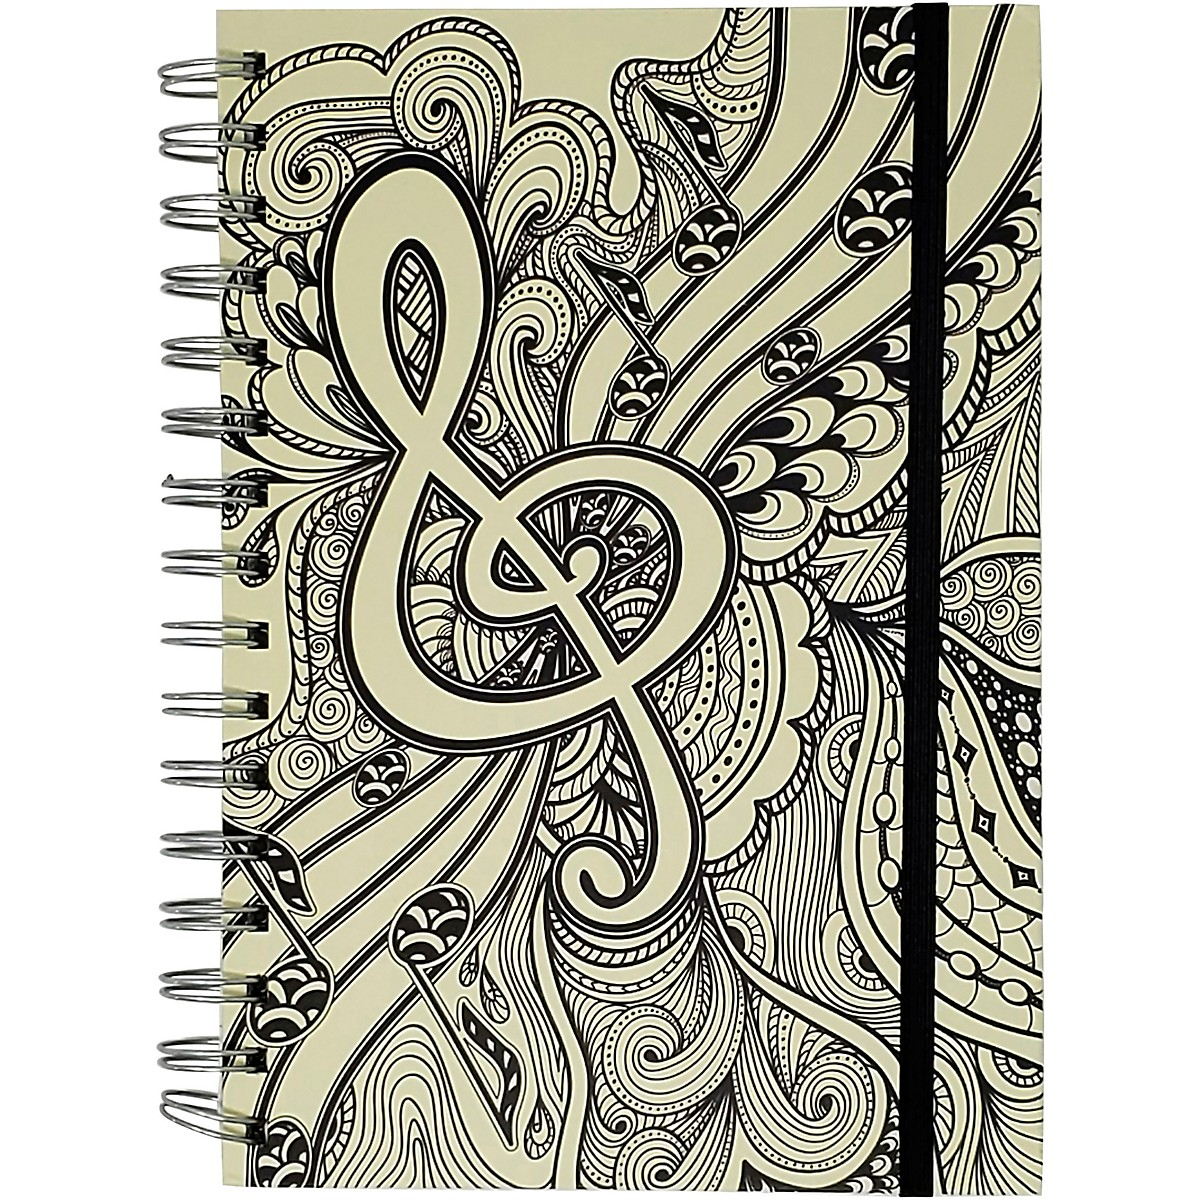 Pyramid America Music Note Line Sketch Premium Journal